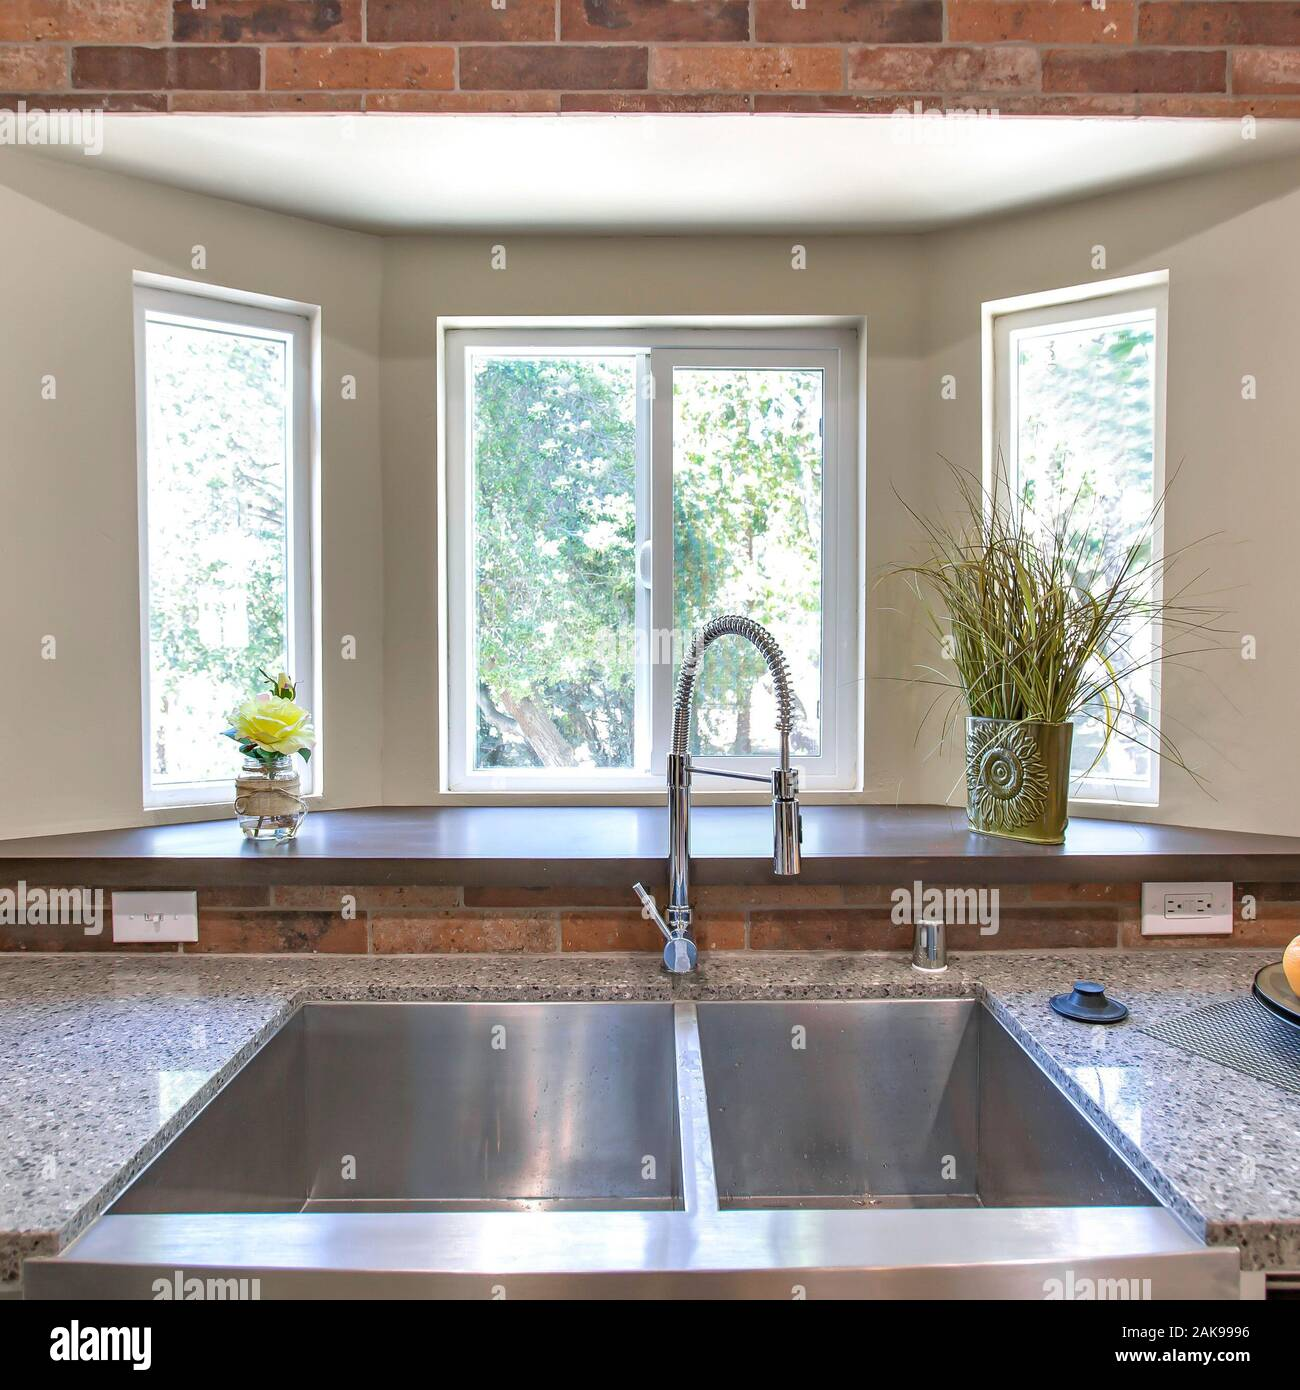 Square Kitchen sink close up with bay windows in the background Stock Photo